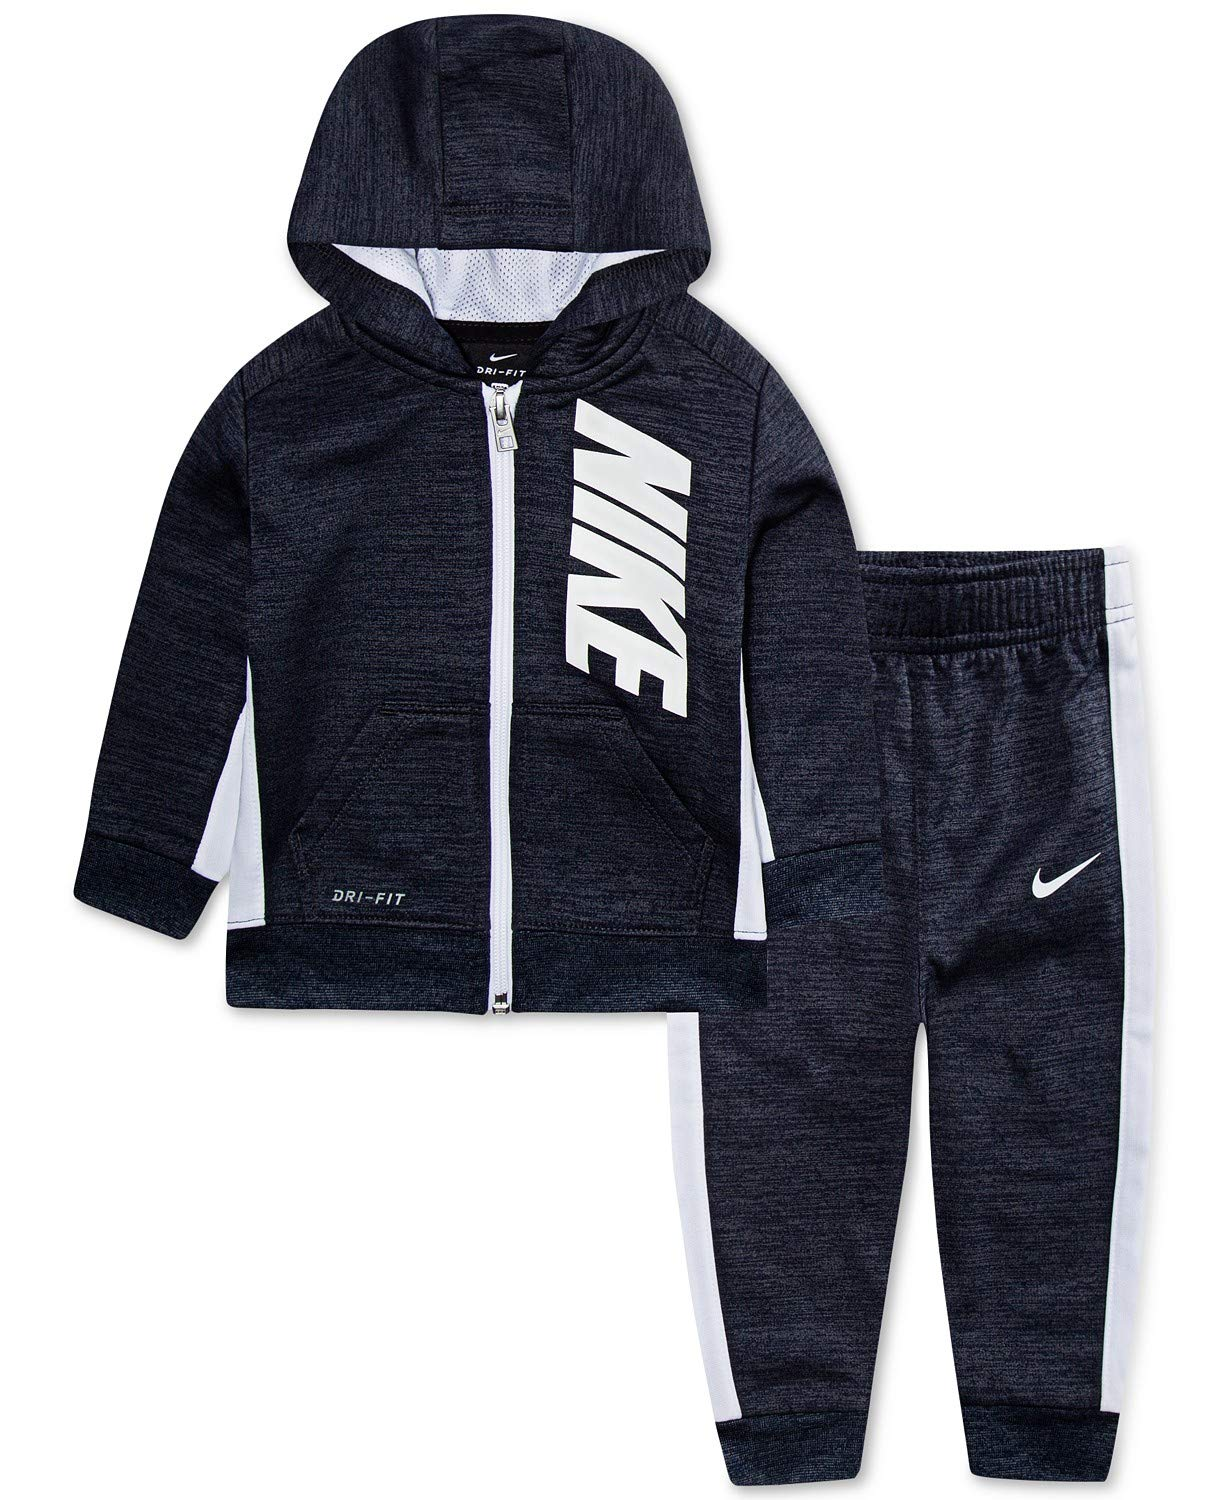 NIKE Baby Boys' Therma Dri-Fit 2-Piece Tracksuit Pant Set Outfit - Obsidian